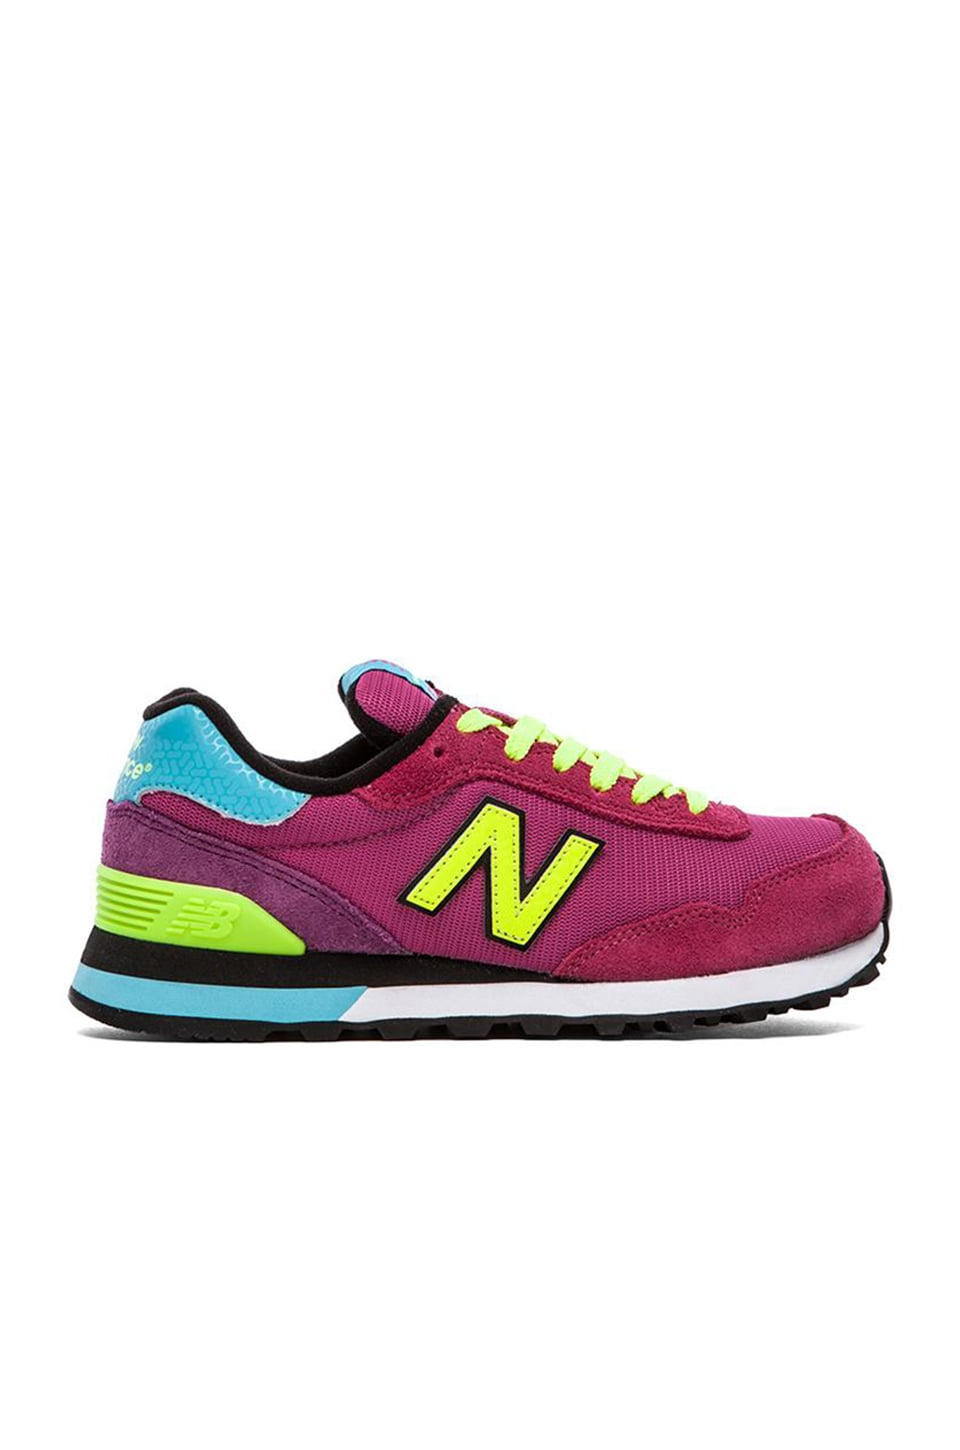 New Balance Modern Classics Collection in Pink & Blue